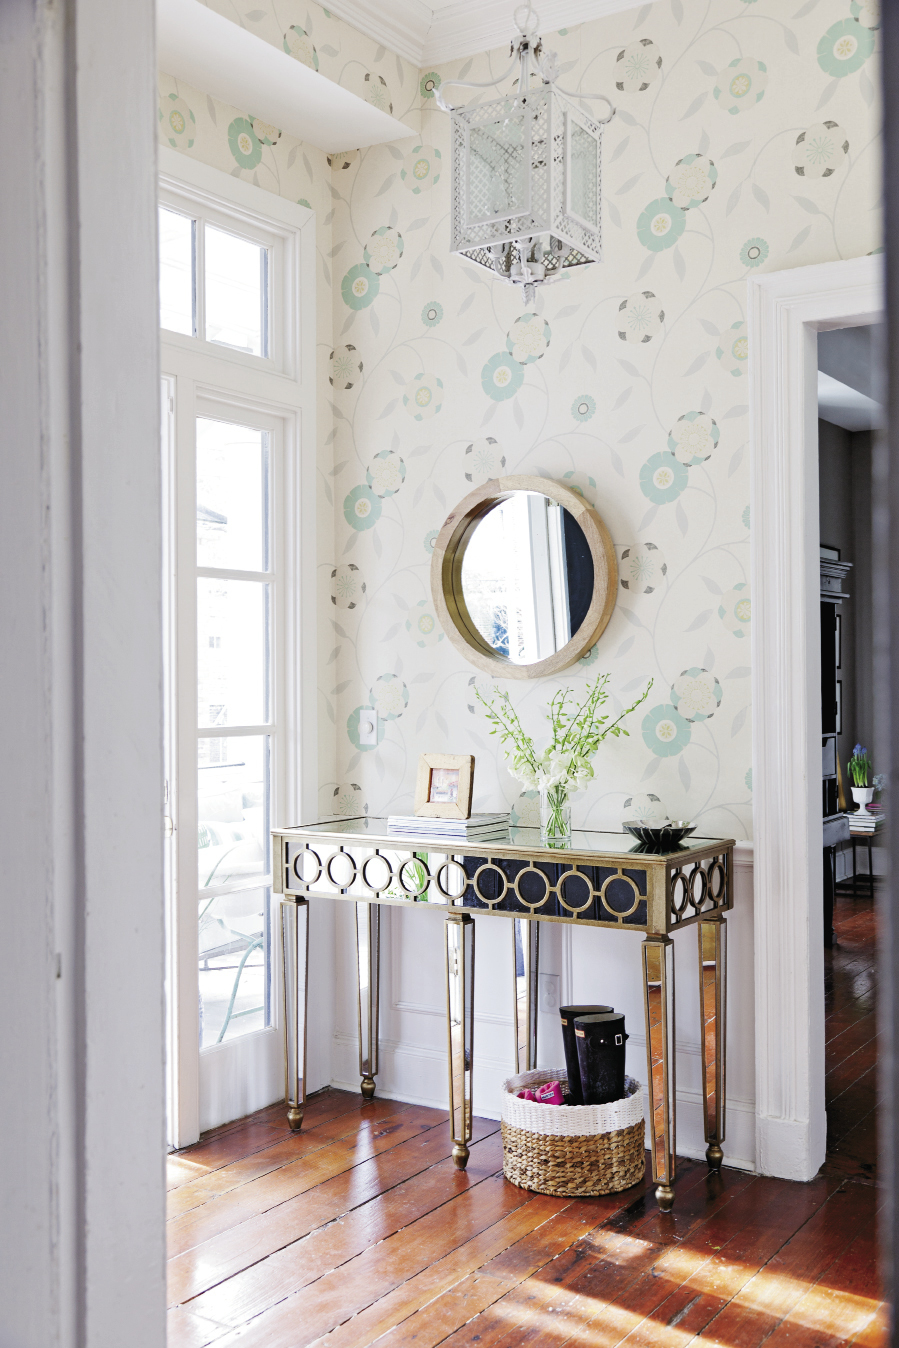 Youthful Impression Stodgy striped wallpaper was replaced with a breezy, happy pattern in Lauren and David Lails' foyer, immediately announcing that this century-old abode has spunky new life.